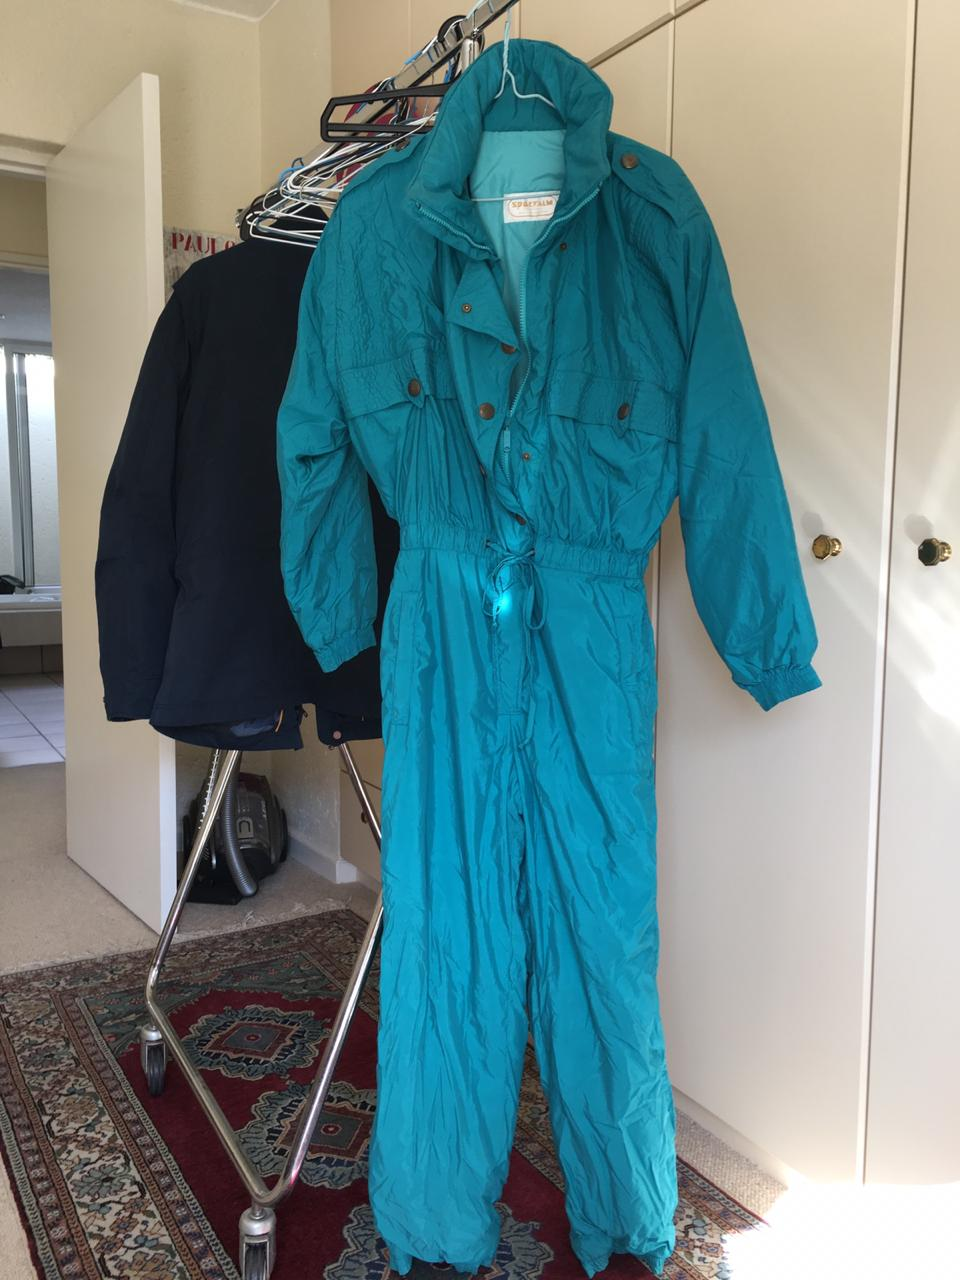 SNOW SKI SUIT    - Woman's Ski Suit all in one – RSA size 10